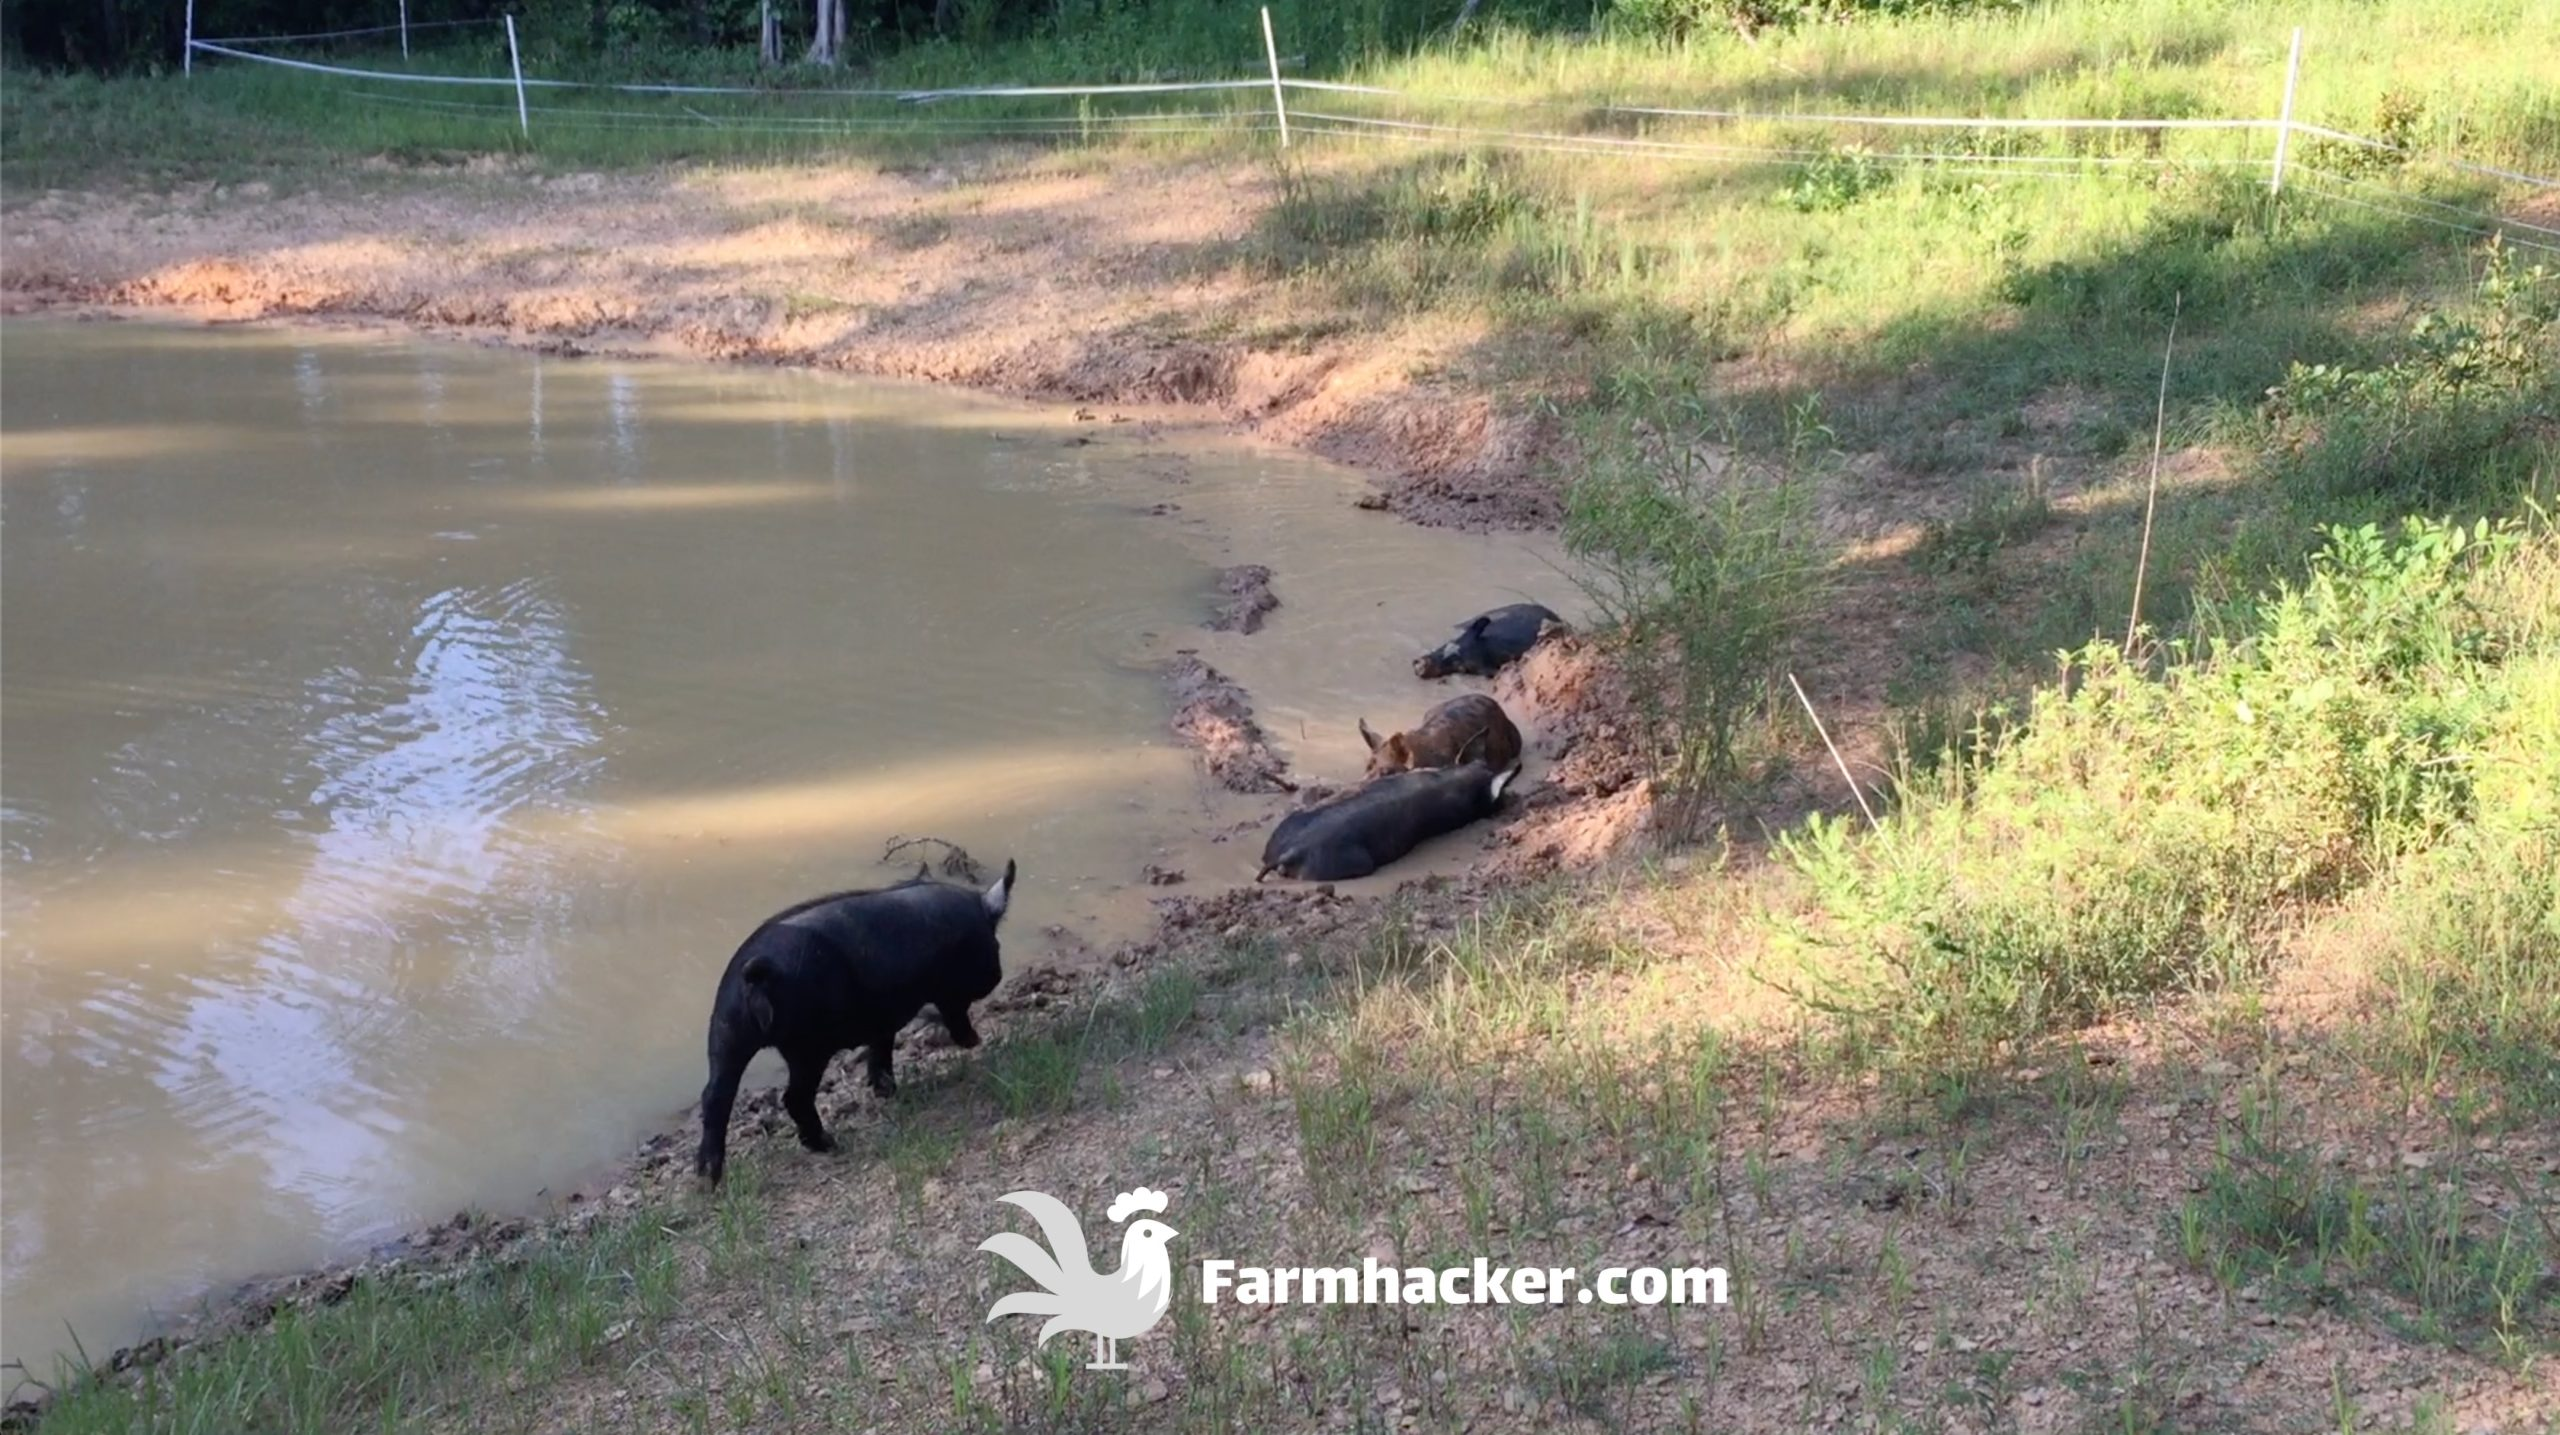 Pigs Laying in Our Pond - How to Seal a Pond Naturally With Pigs